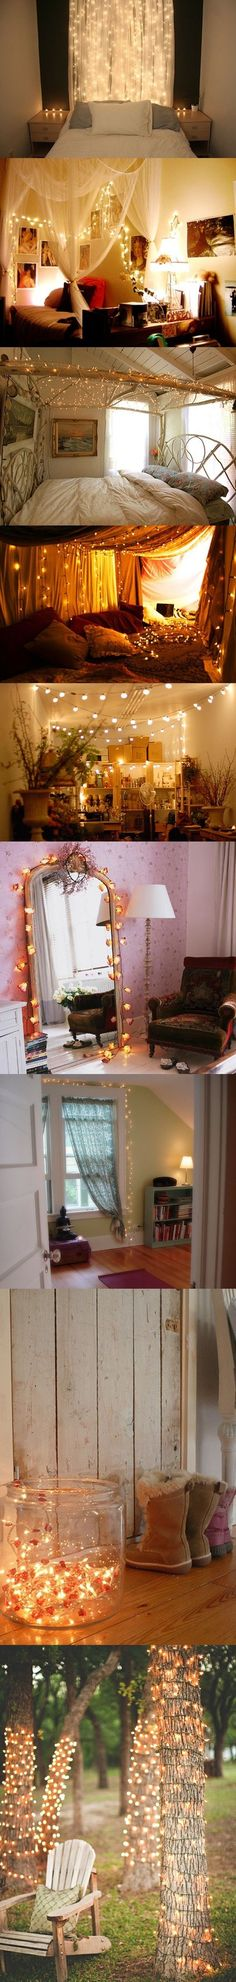 "Love the white lights! Could do a ""canopy"" type thing around your bed with the white panels and white lights like the second picture down from the top. Very cozy!!"